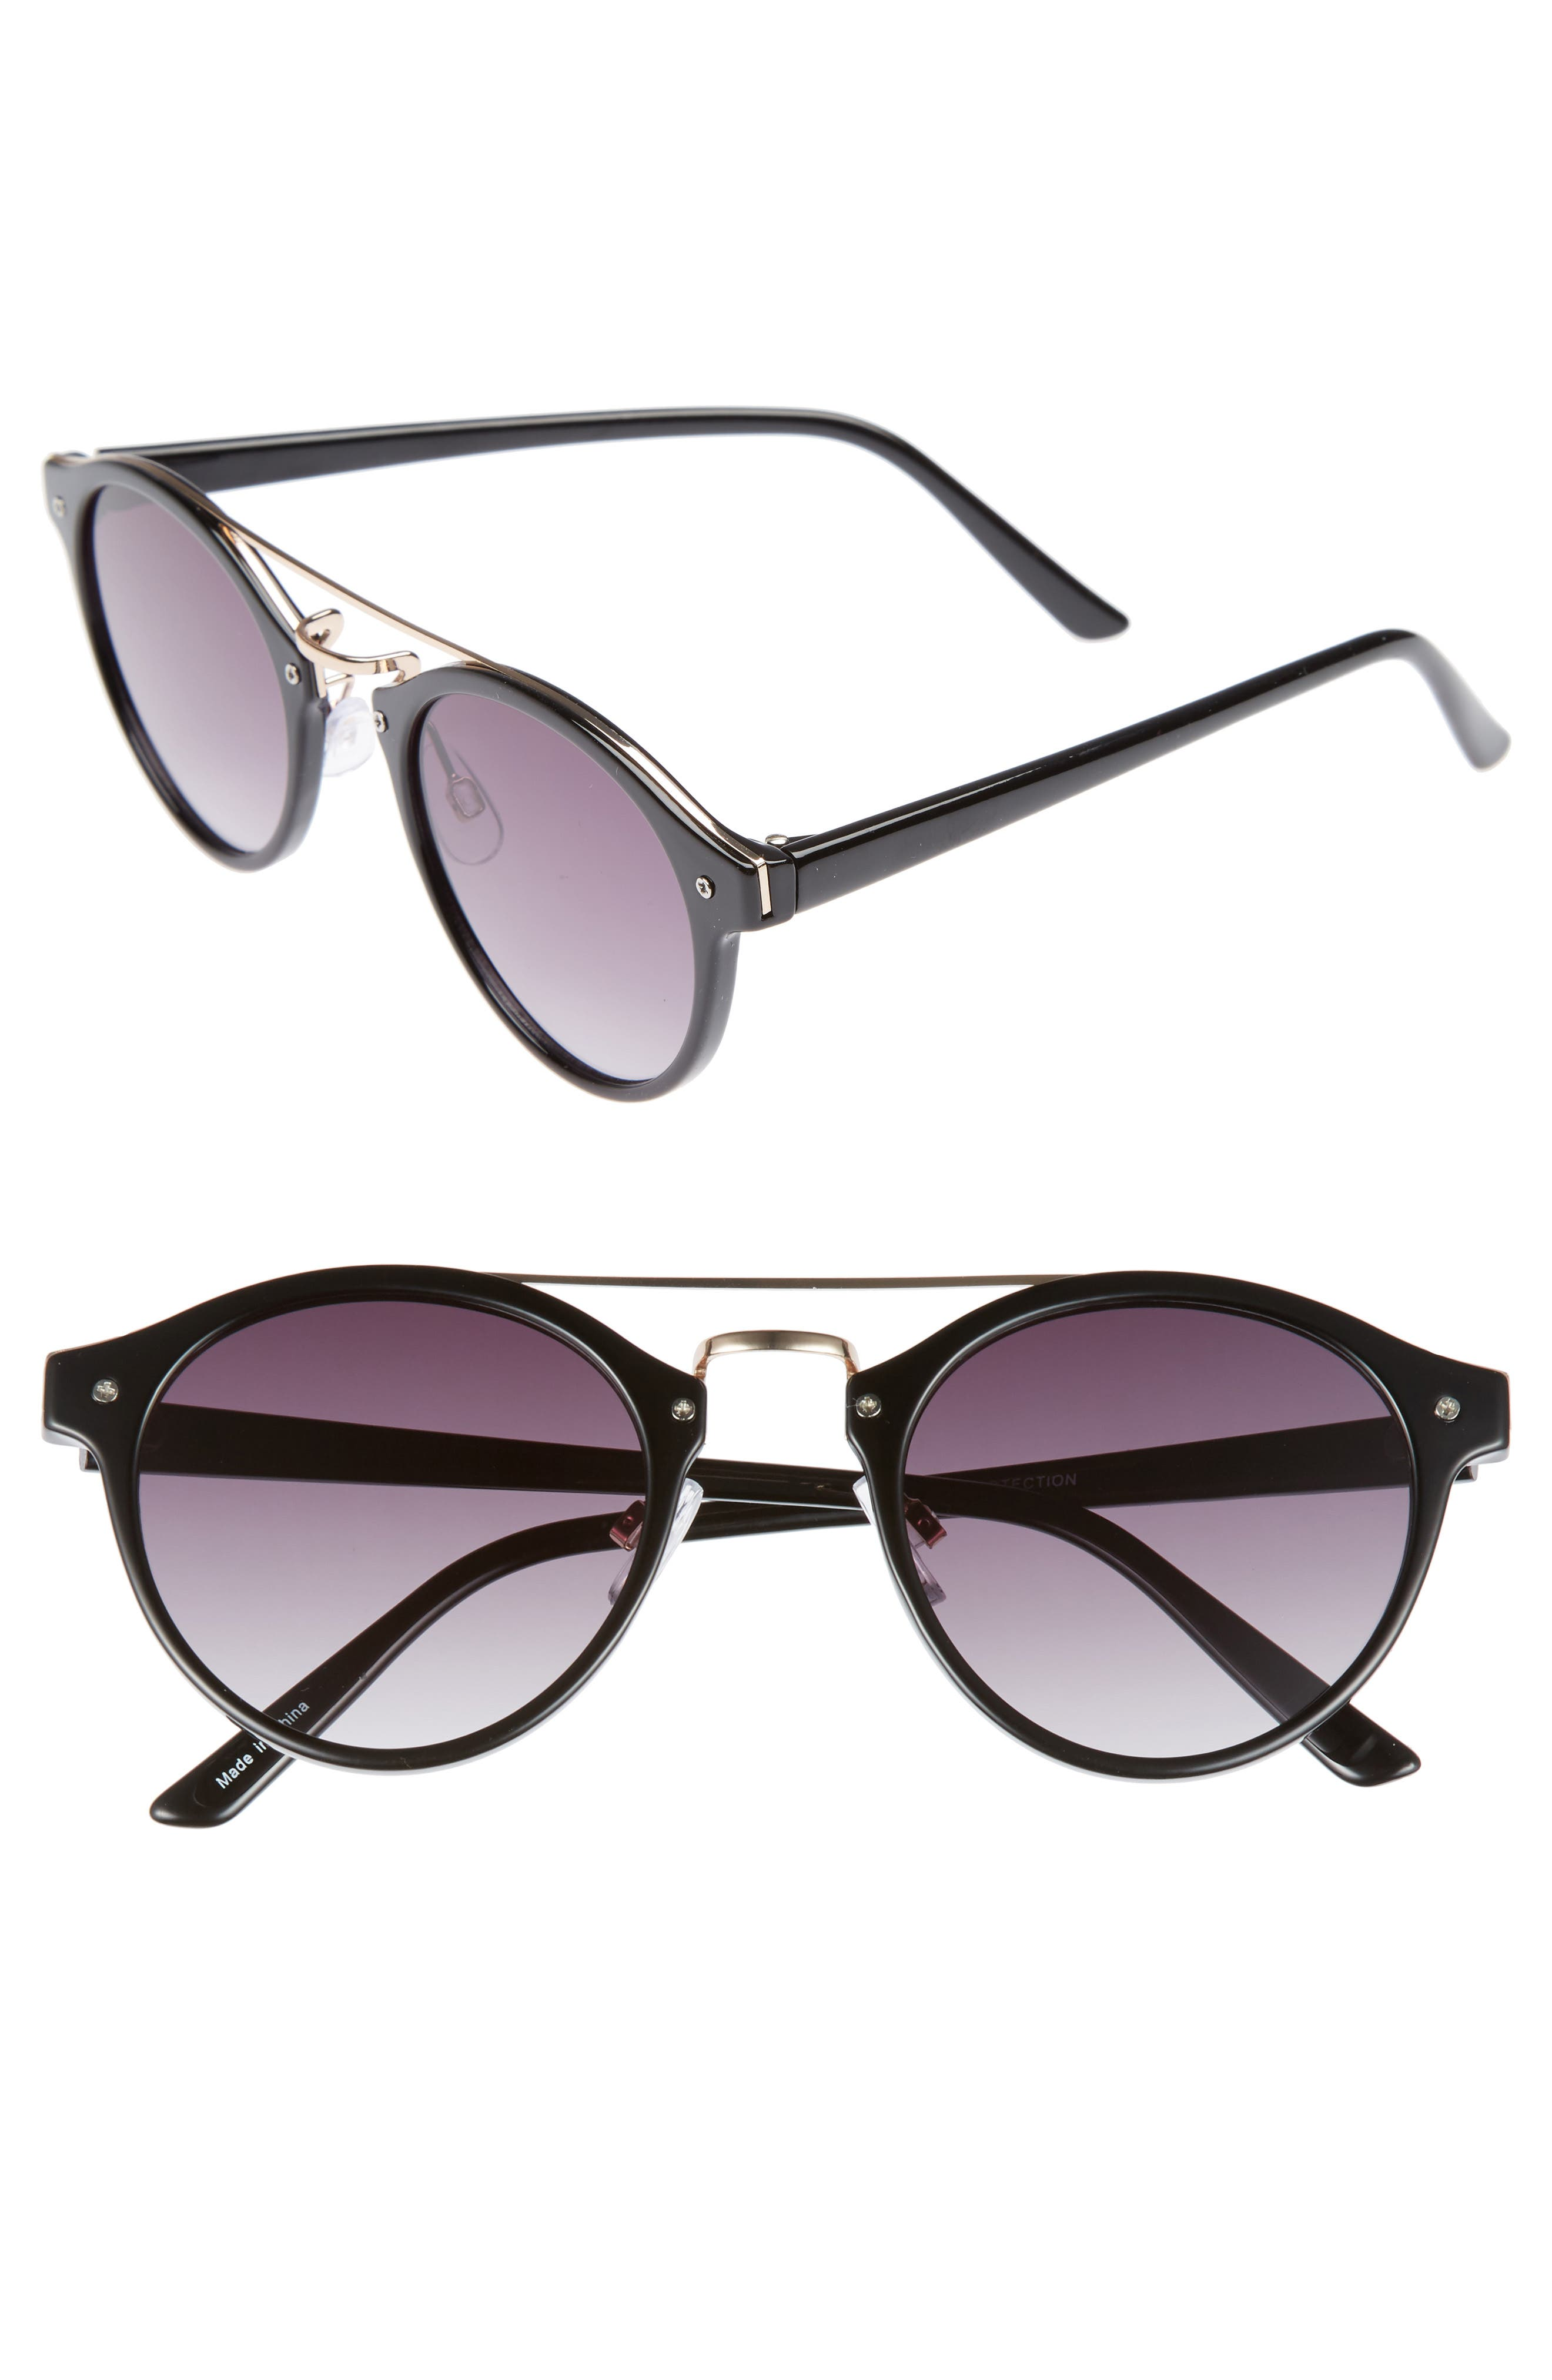 45mm Round Sunglasses,                             Main thumbnail 1, color,                             001